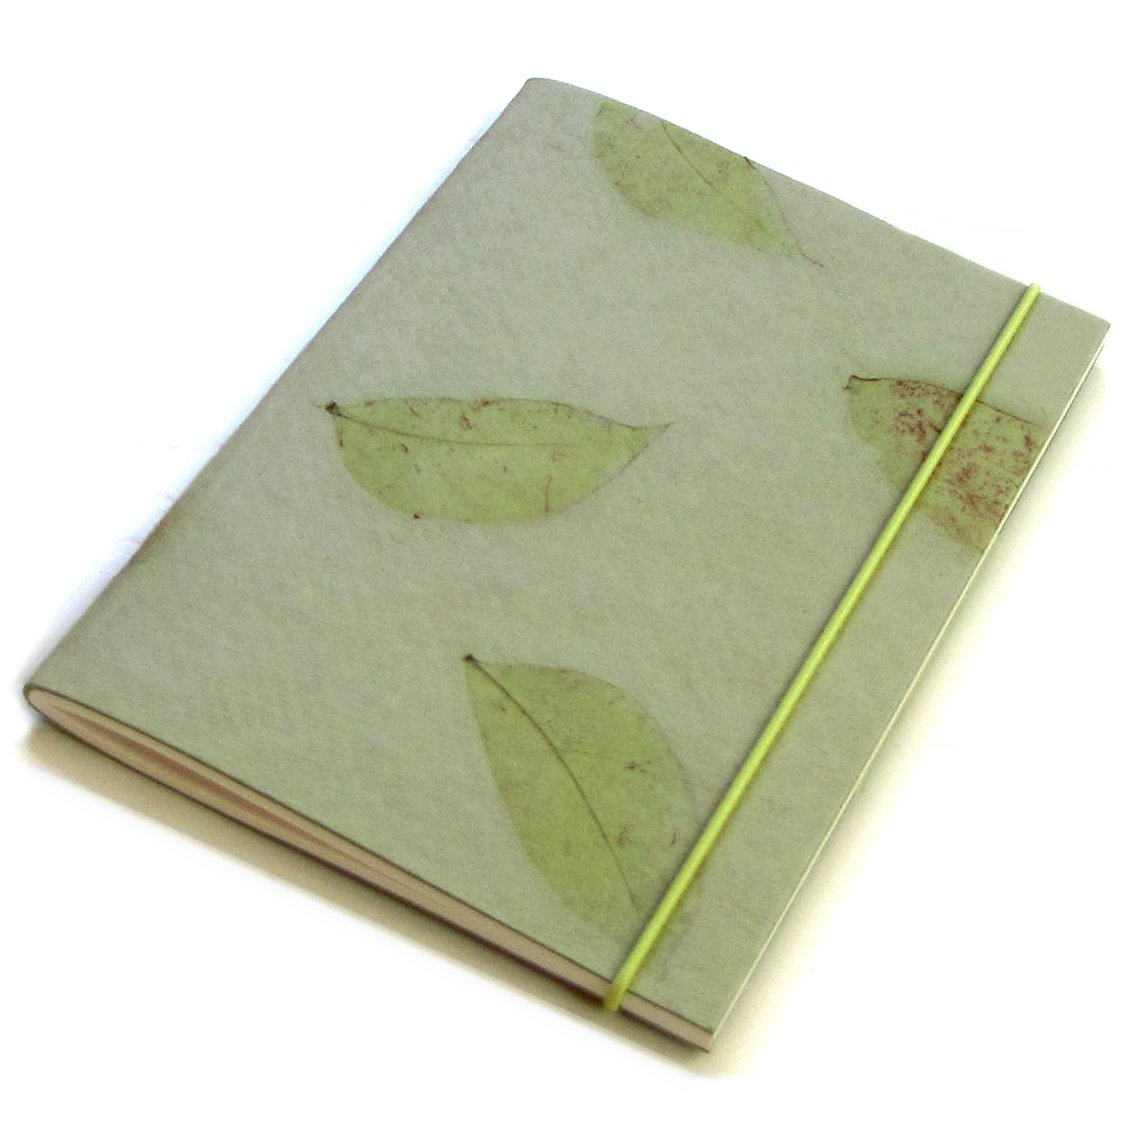 Travel journal guest book mint handmade small leaf paper sketching 5x7 40pp blank diary